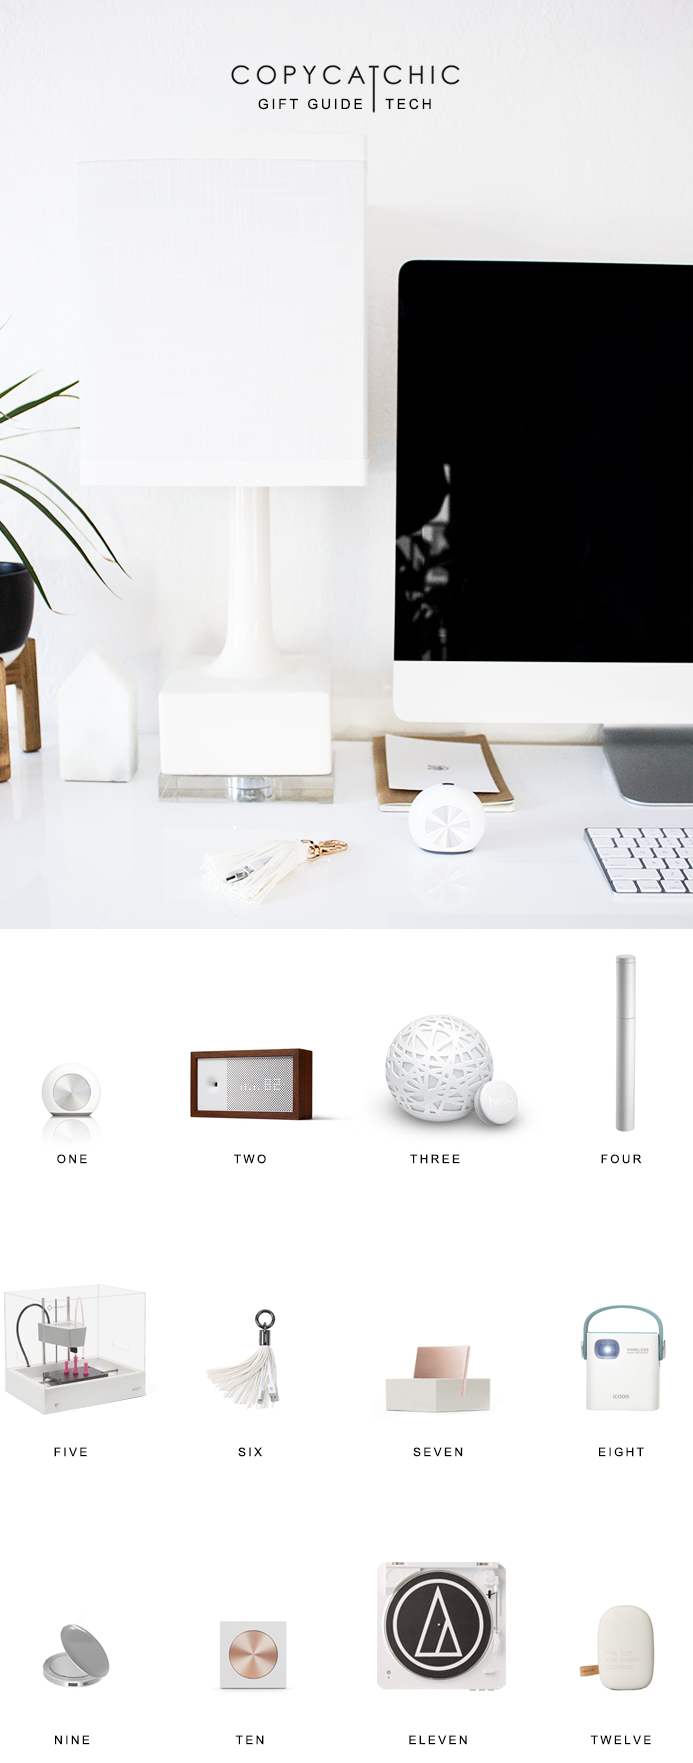 Modern minimalist tech for design lovers. Perfect Christmas gifts | Copy Cat Chic techie favorites for the 2016 holiday season! | Luxe living for less